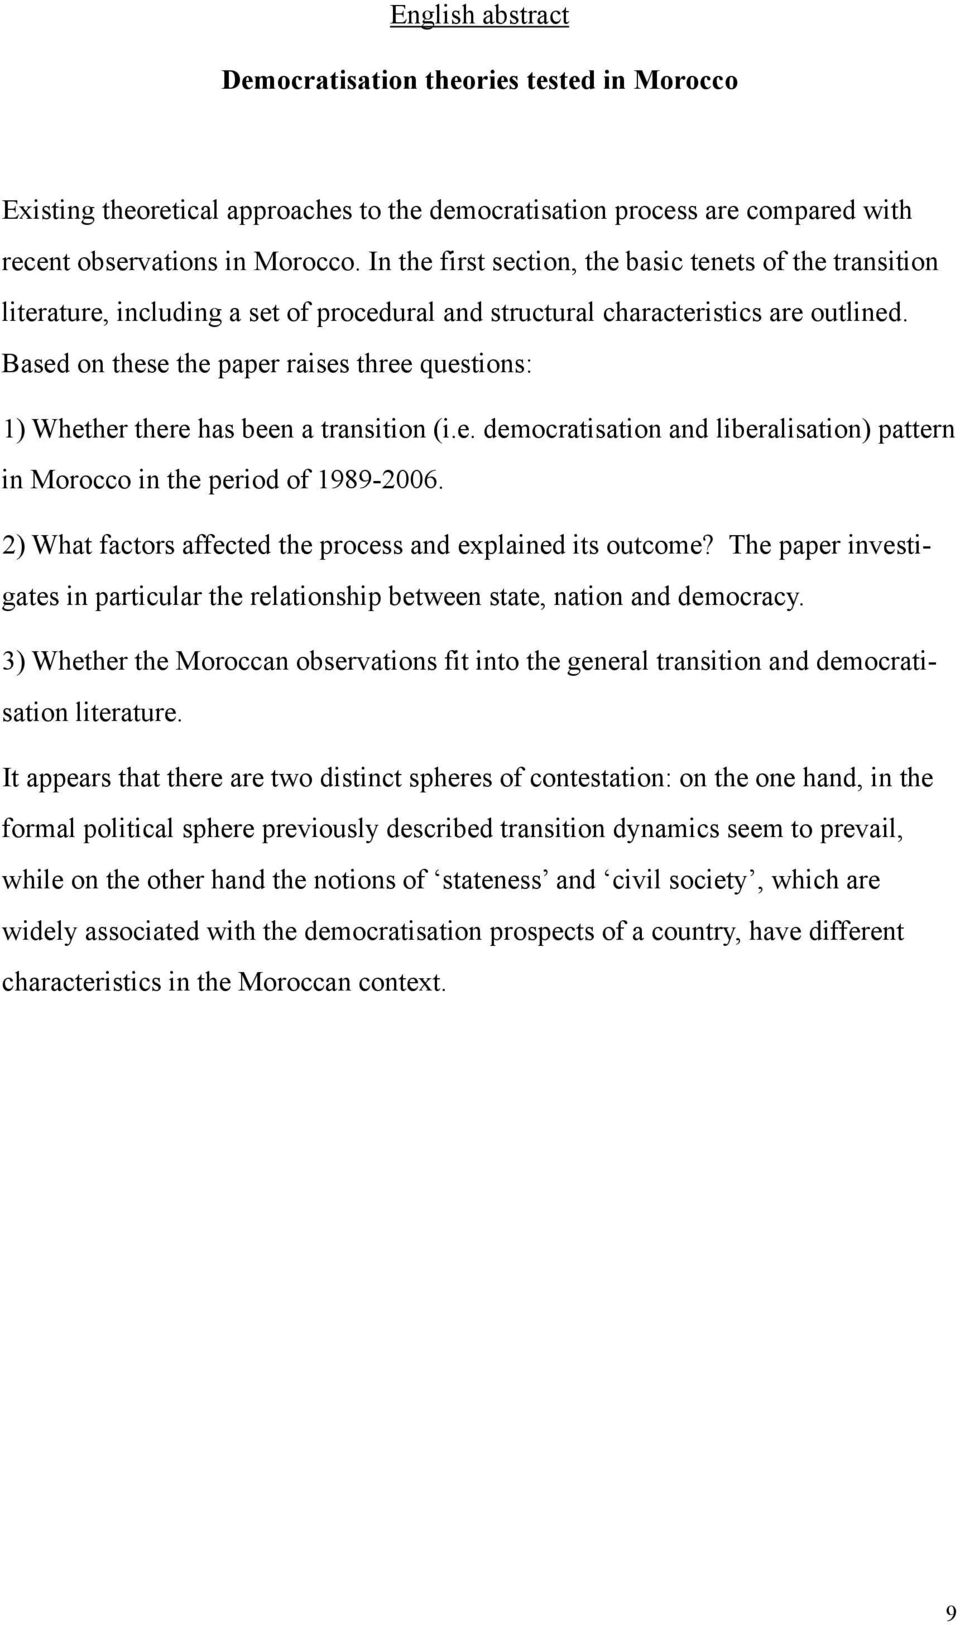 Based on these the paper raises three questions: 1) Whether there has been a transition (i.e. democratisation and liberalisation) pattern in Morocco in the period of 1989-2006.